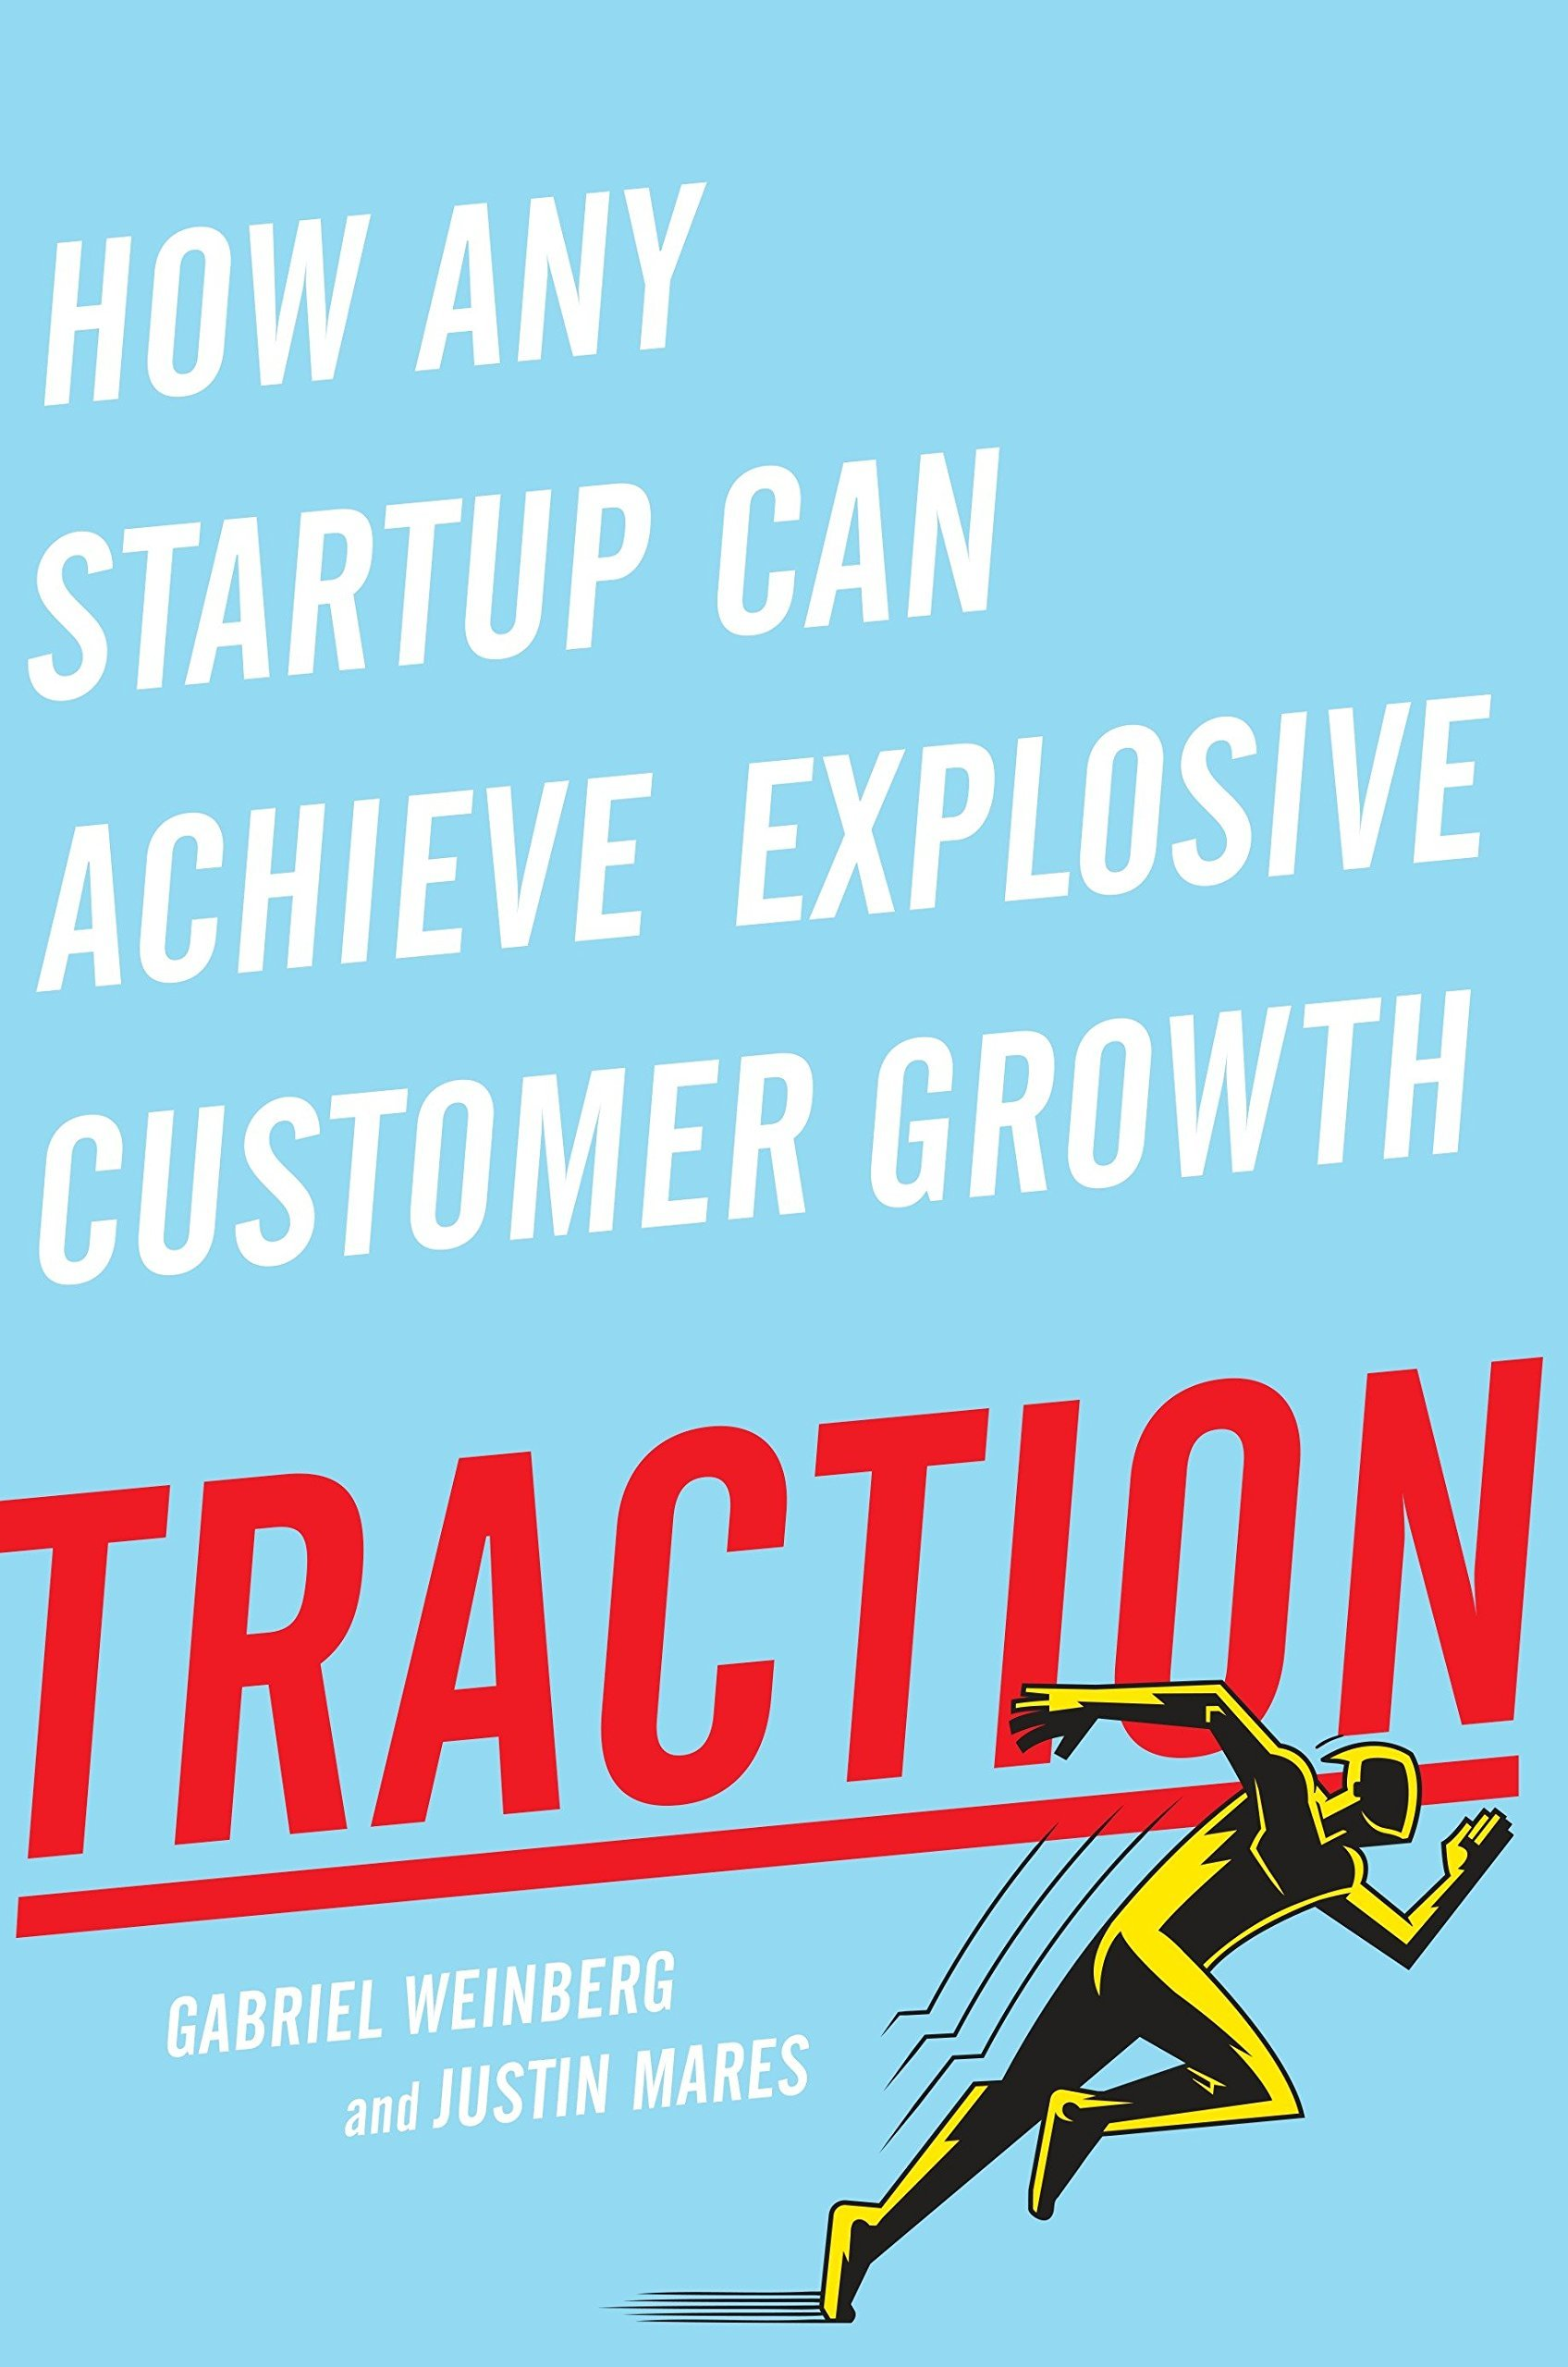 Traction by Justin Mares and Gabriel Weinberg Free Ebook - How any startup can achieve explosive customer growth By Justin Mares and Gabriel Weinberg